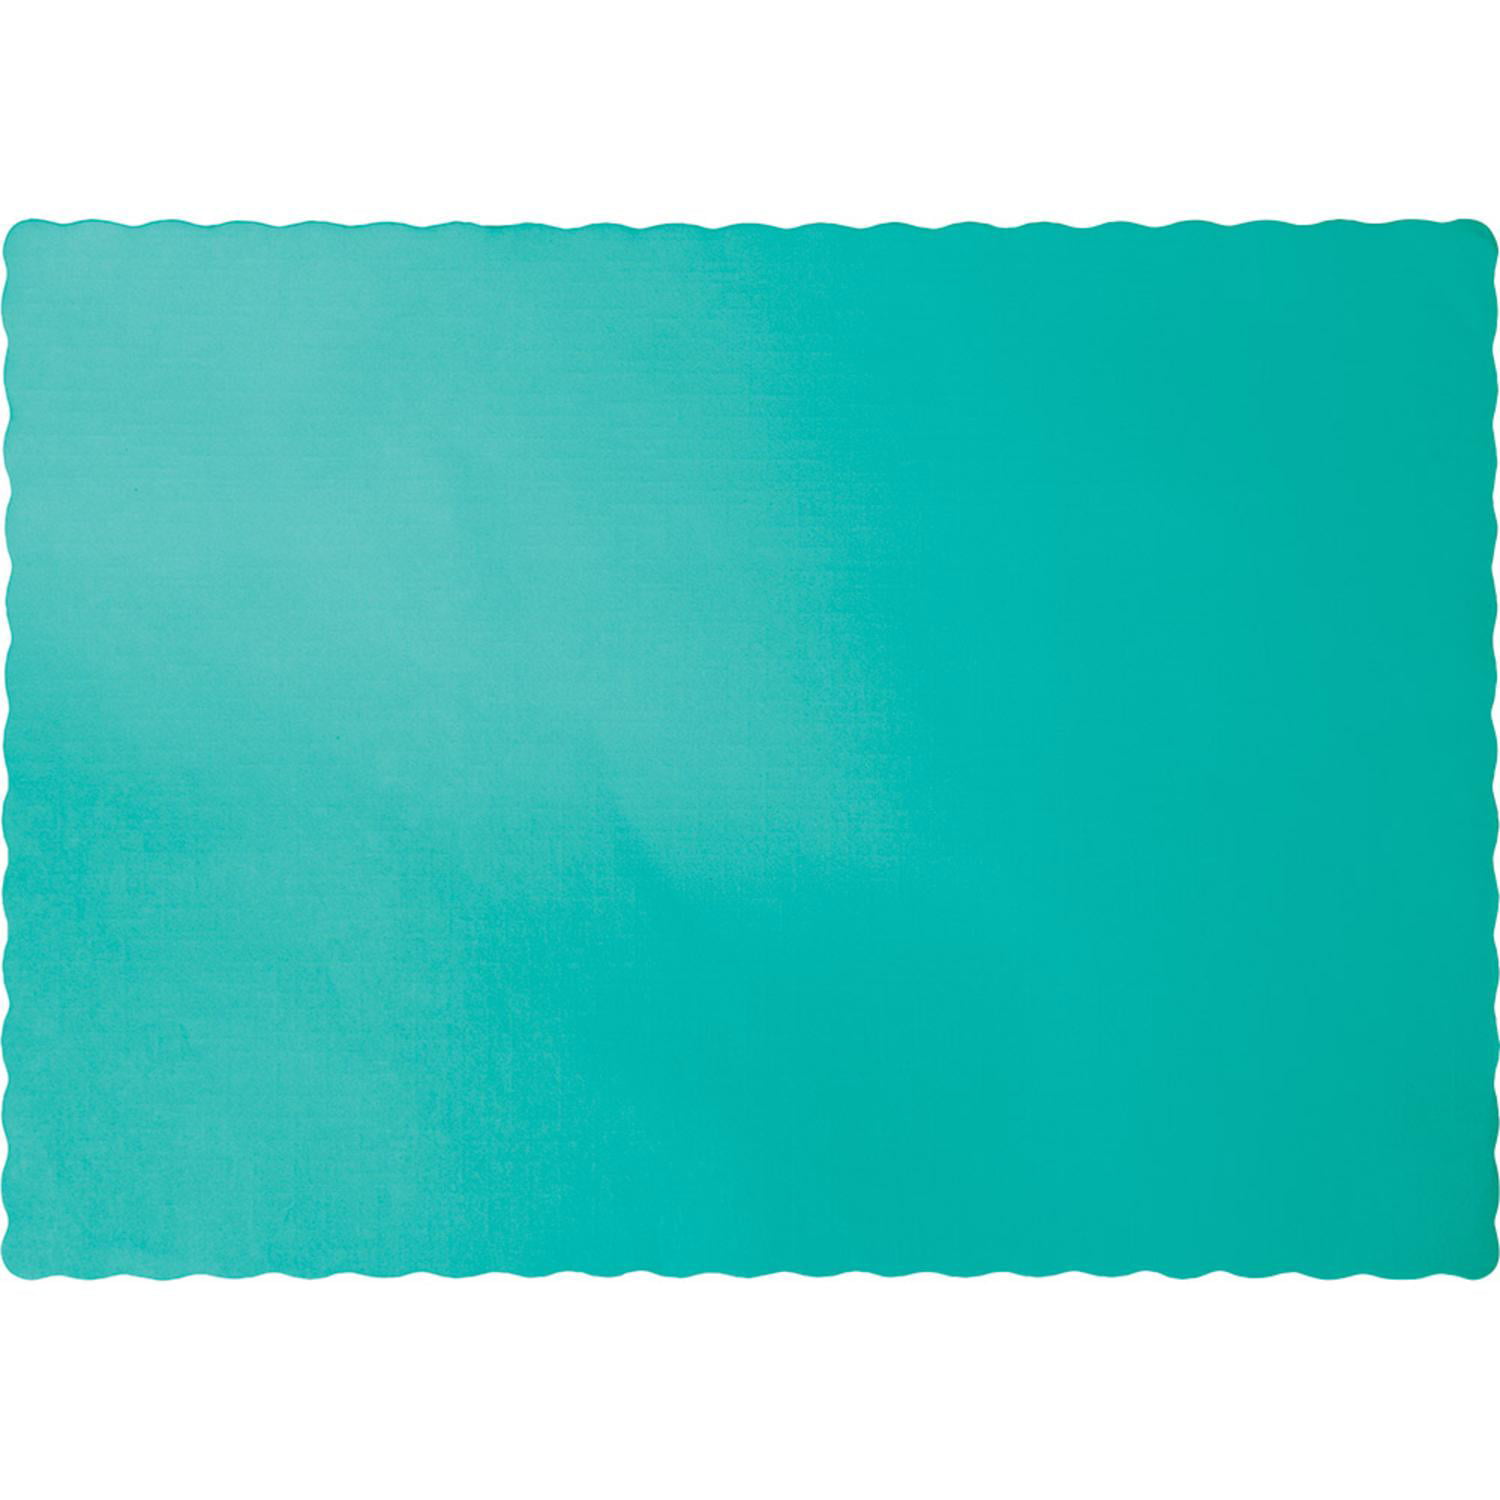 Teal Lagoon Placemats 50 Pack by CREATIVE CONVERTING